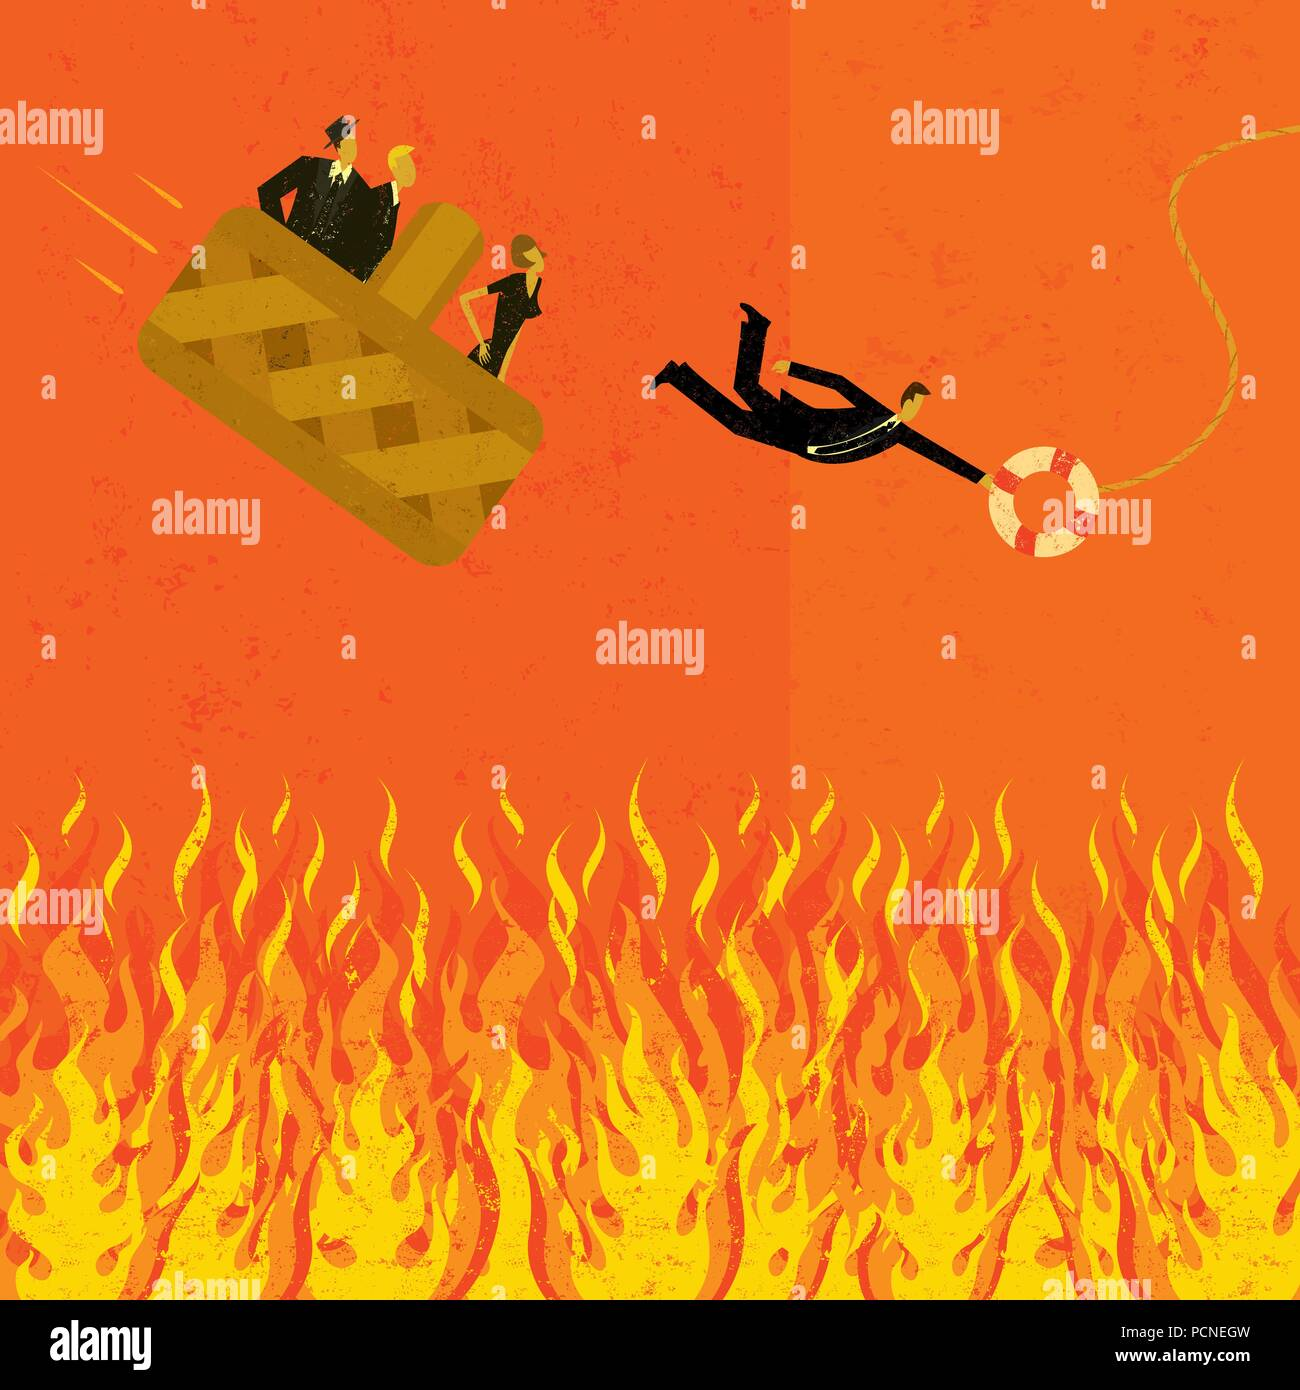 "Avoiding going to hell in a handbasket Business people ""going to hell in a hand basket"" with one man jumping for a life preserver. - Stock Vector"